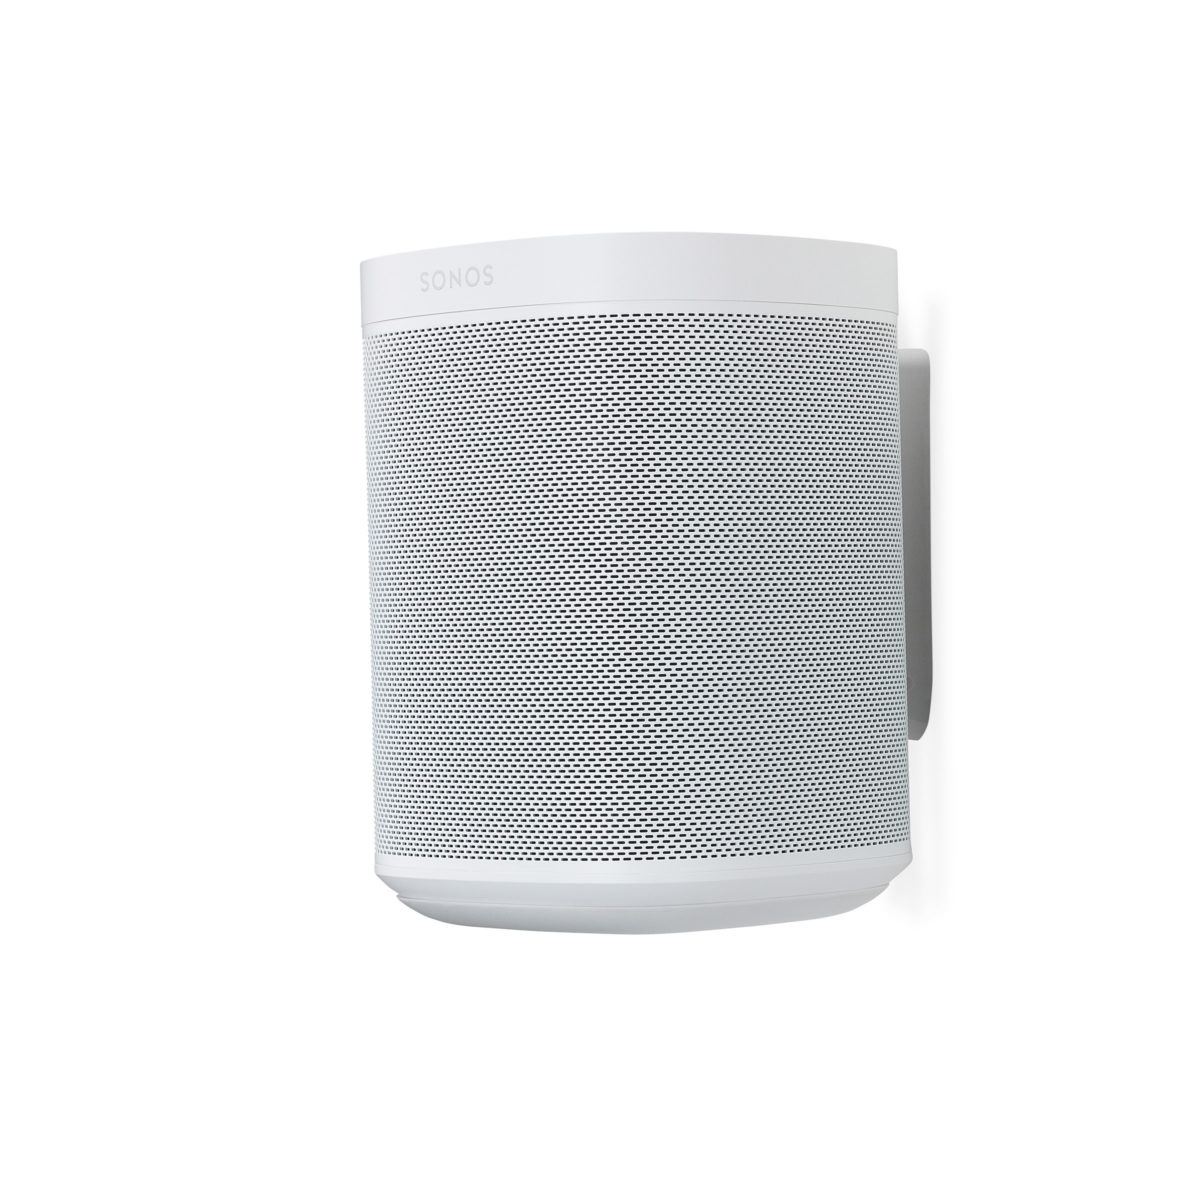 Sonos one muurbeugel wit 8